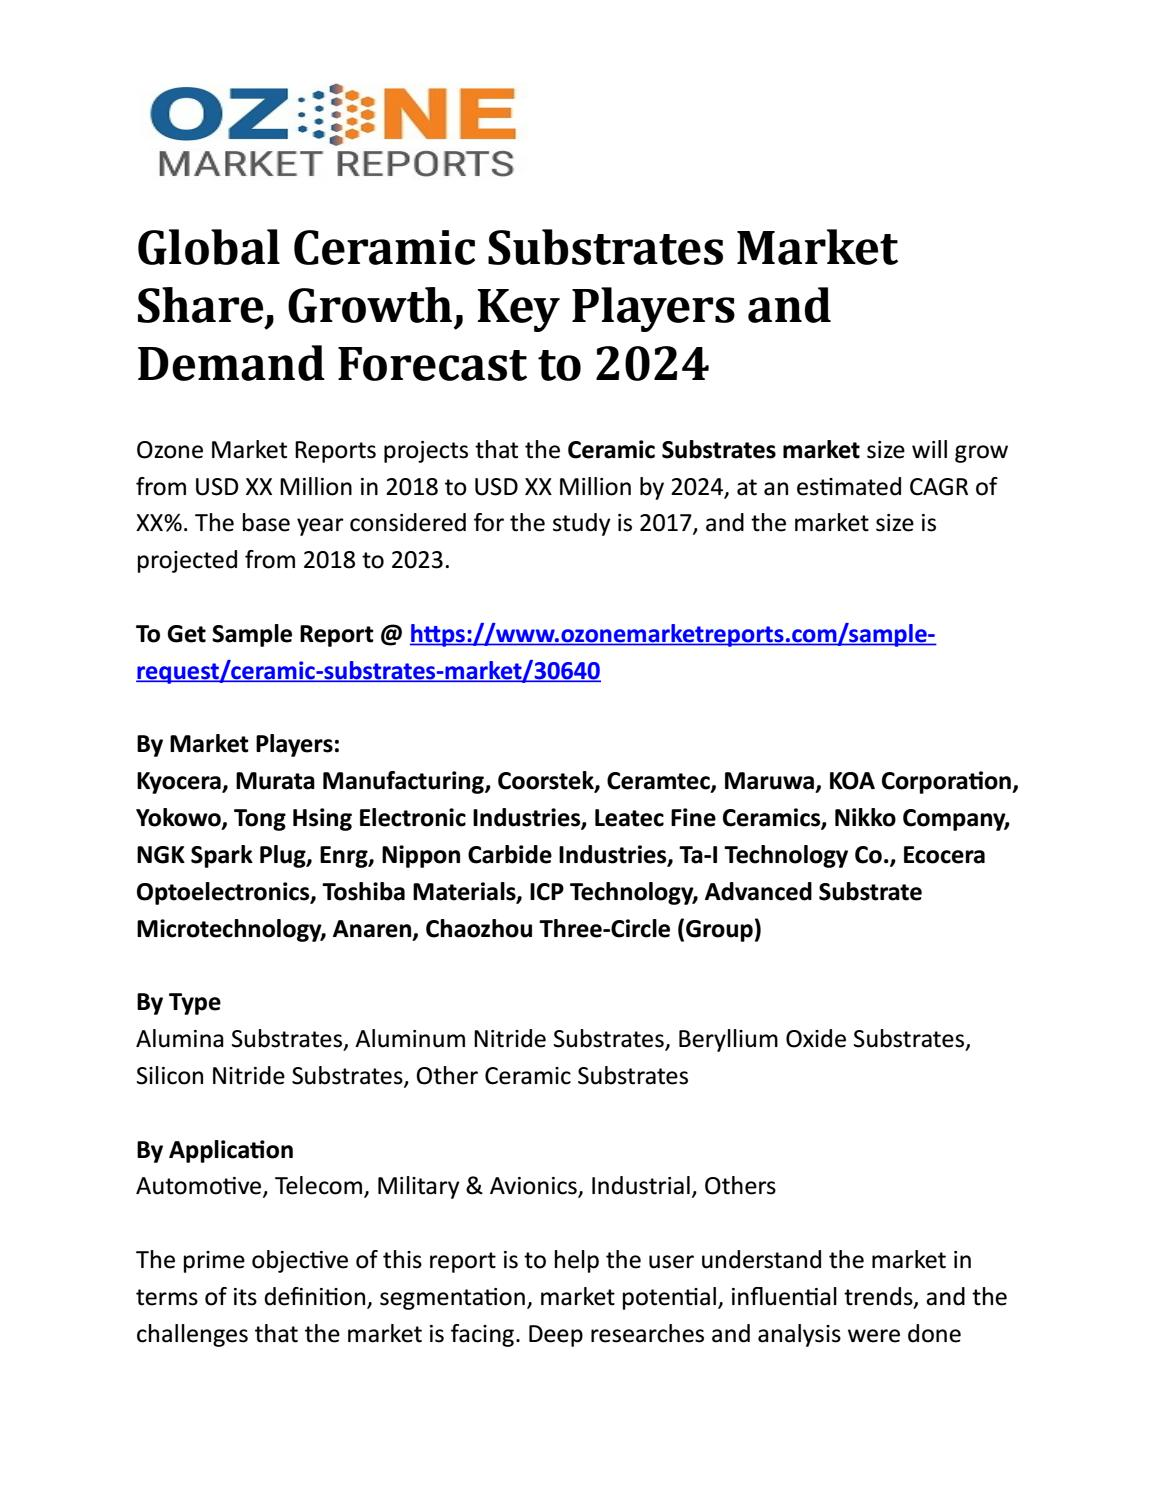 Global Ceramic Substrates Market Share, Growth, Key Players and